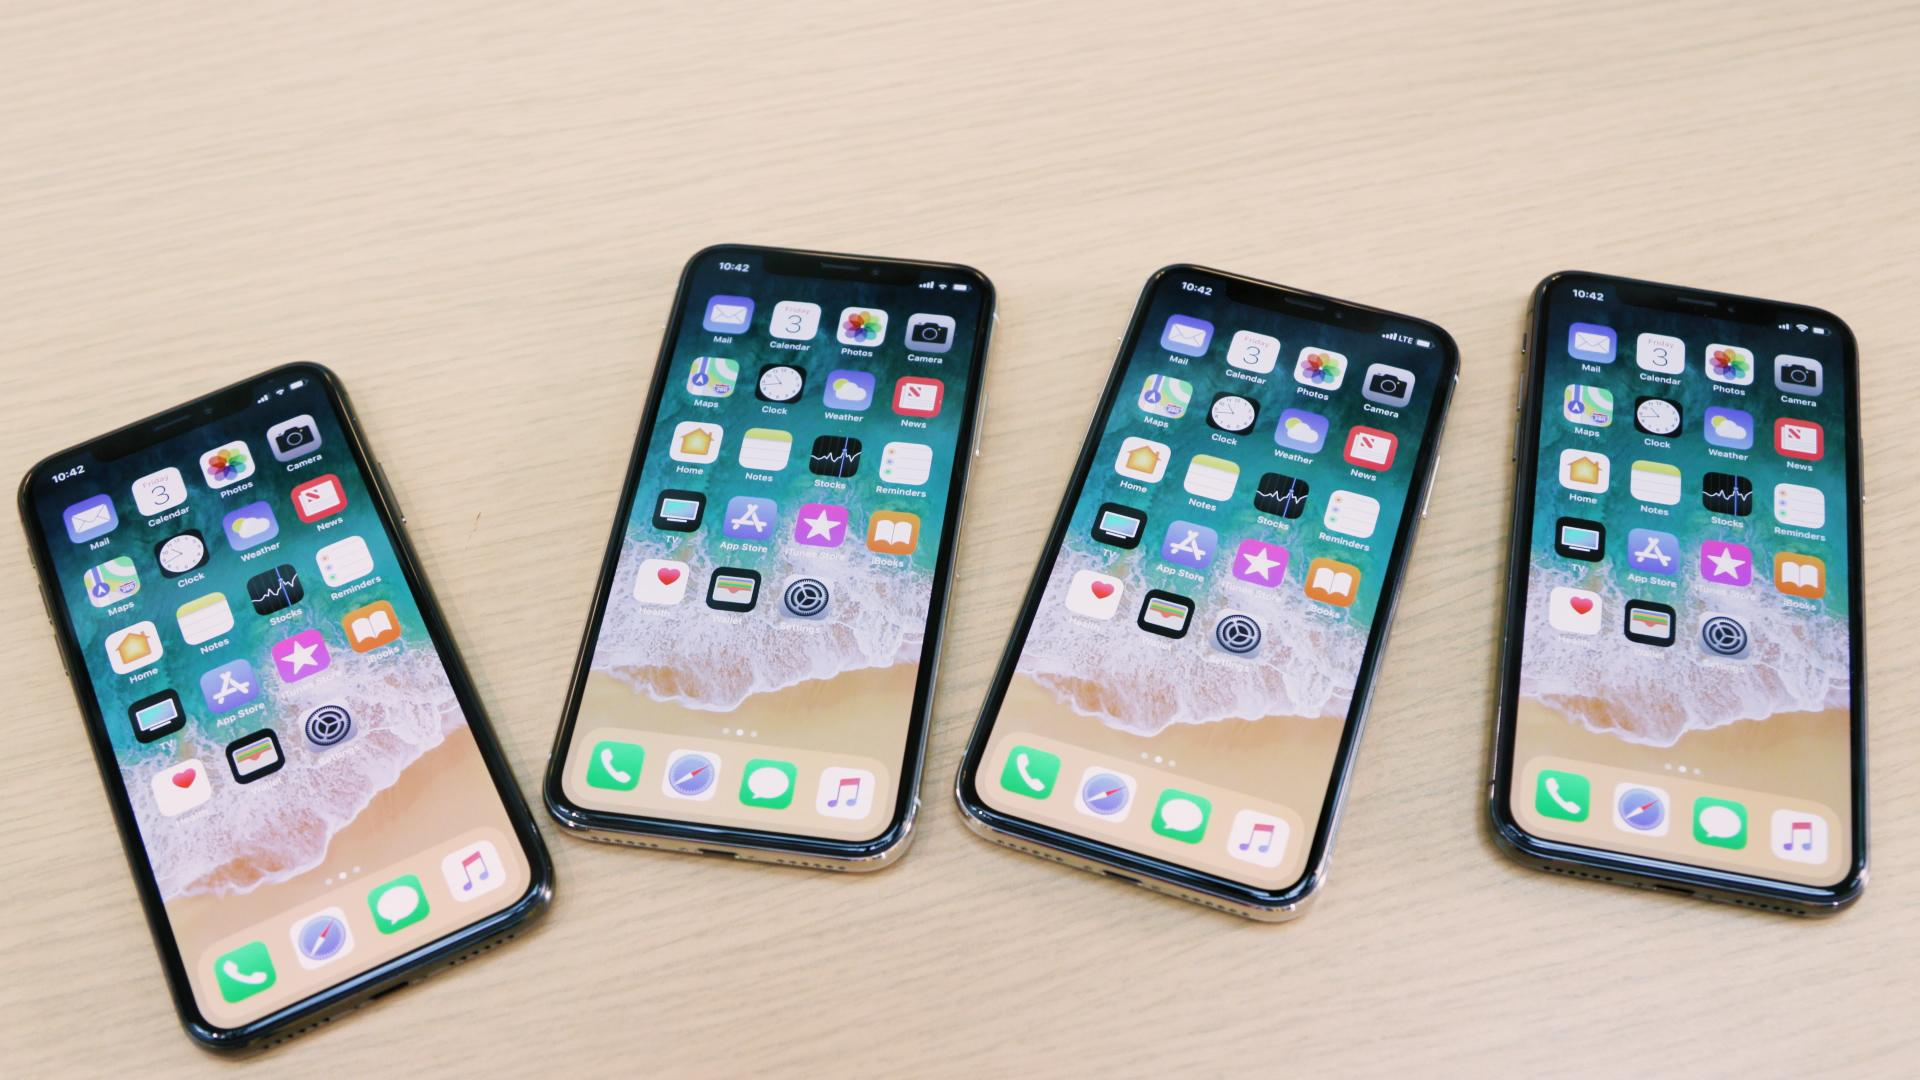 iPhone X Review | Test Results - Consumer Reports